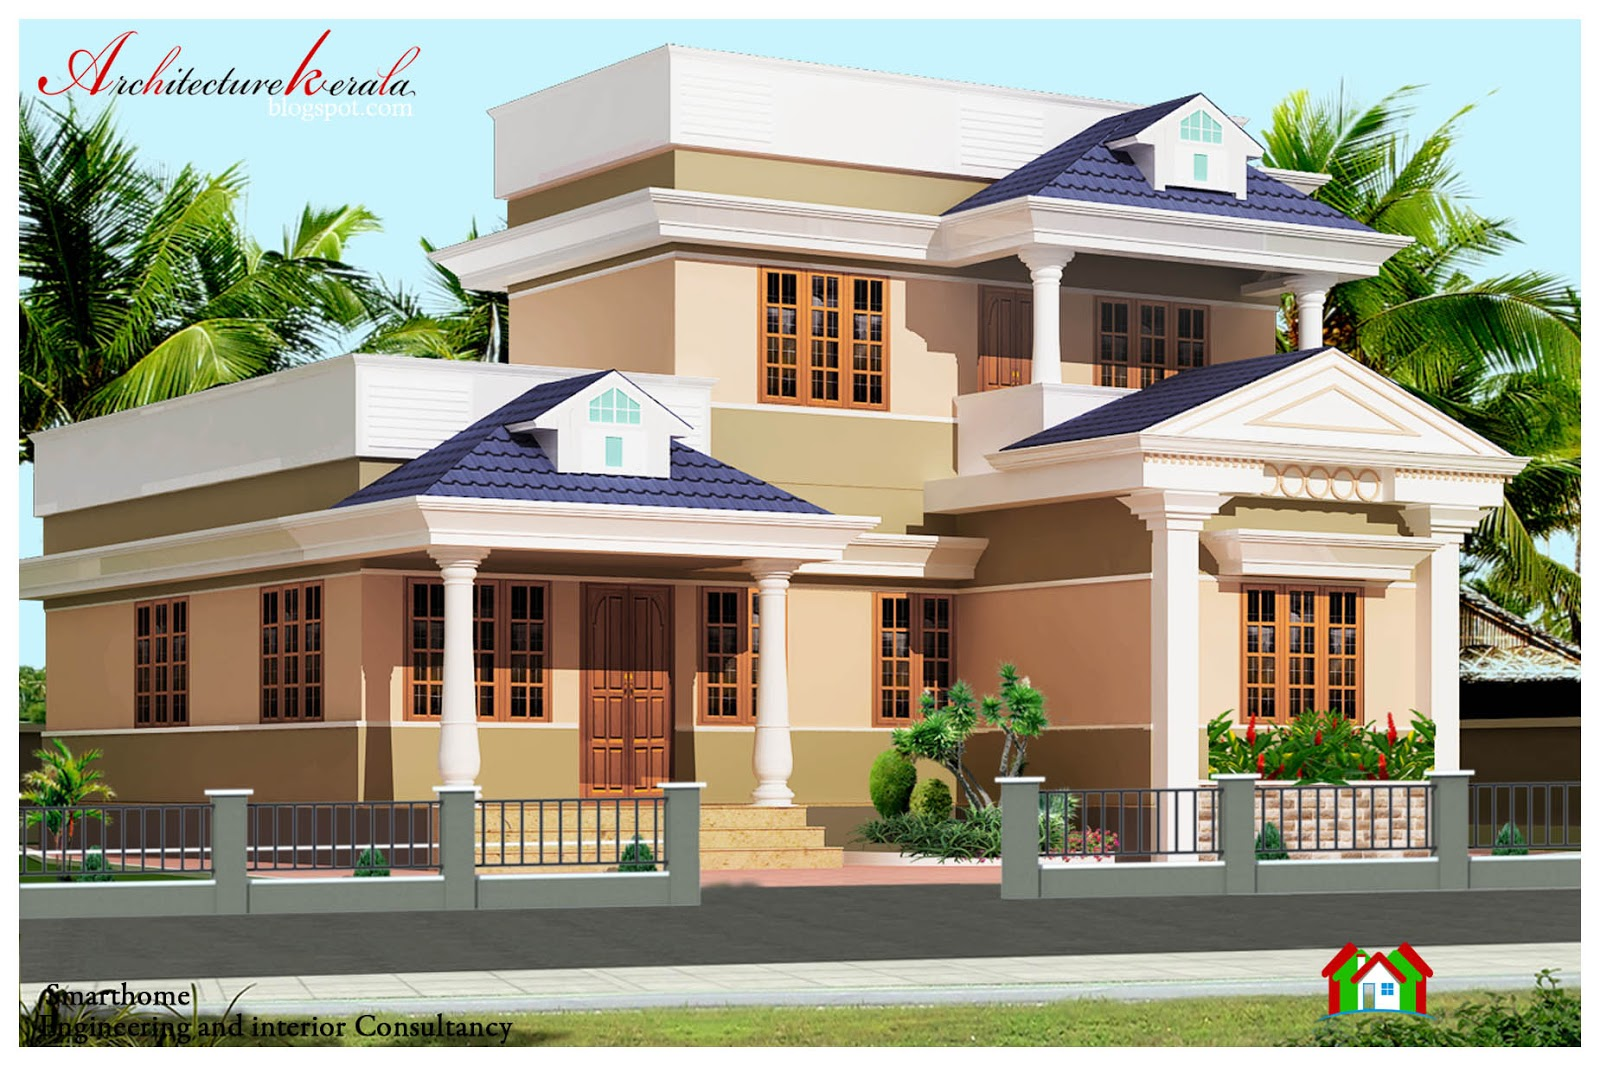 Architecture kerala 1000 sq ft kerala style house plan for Kerala style 2 bedroom house plans